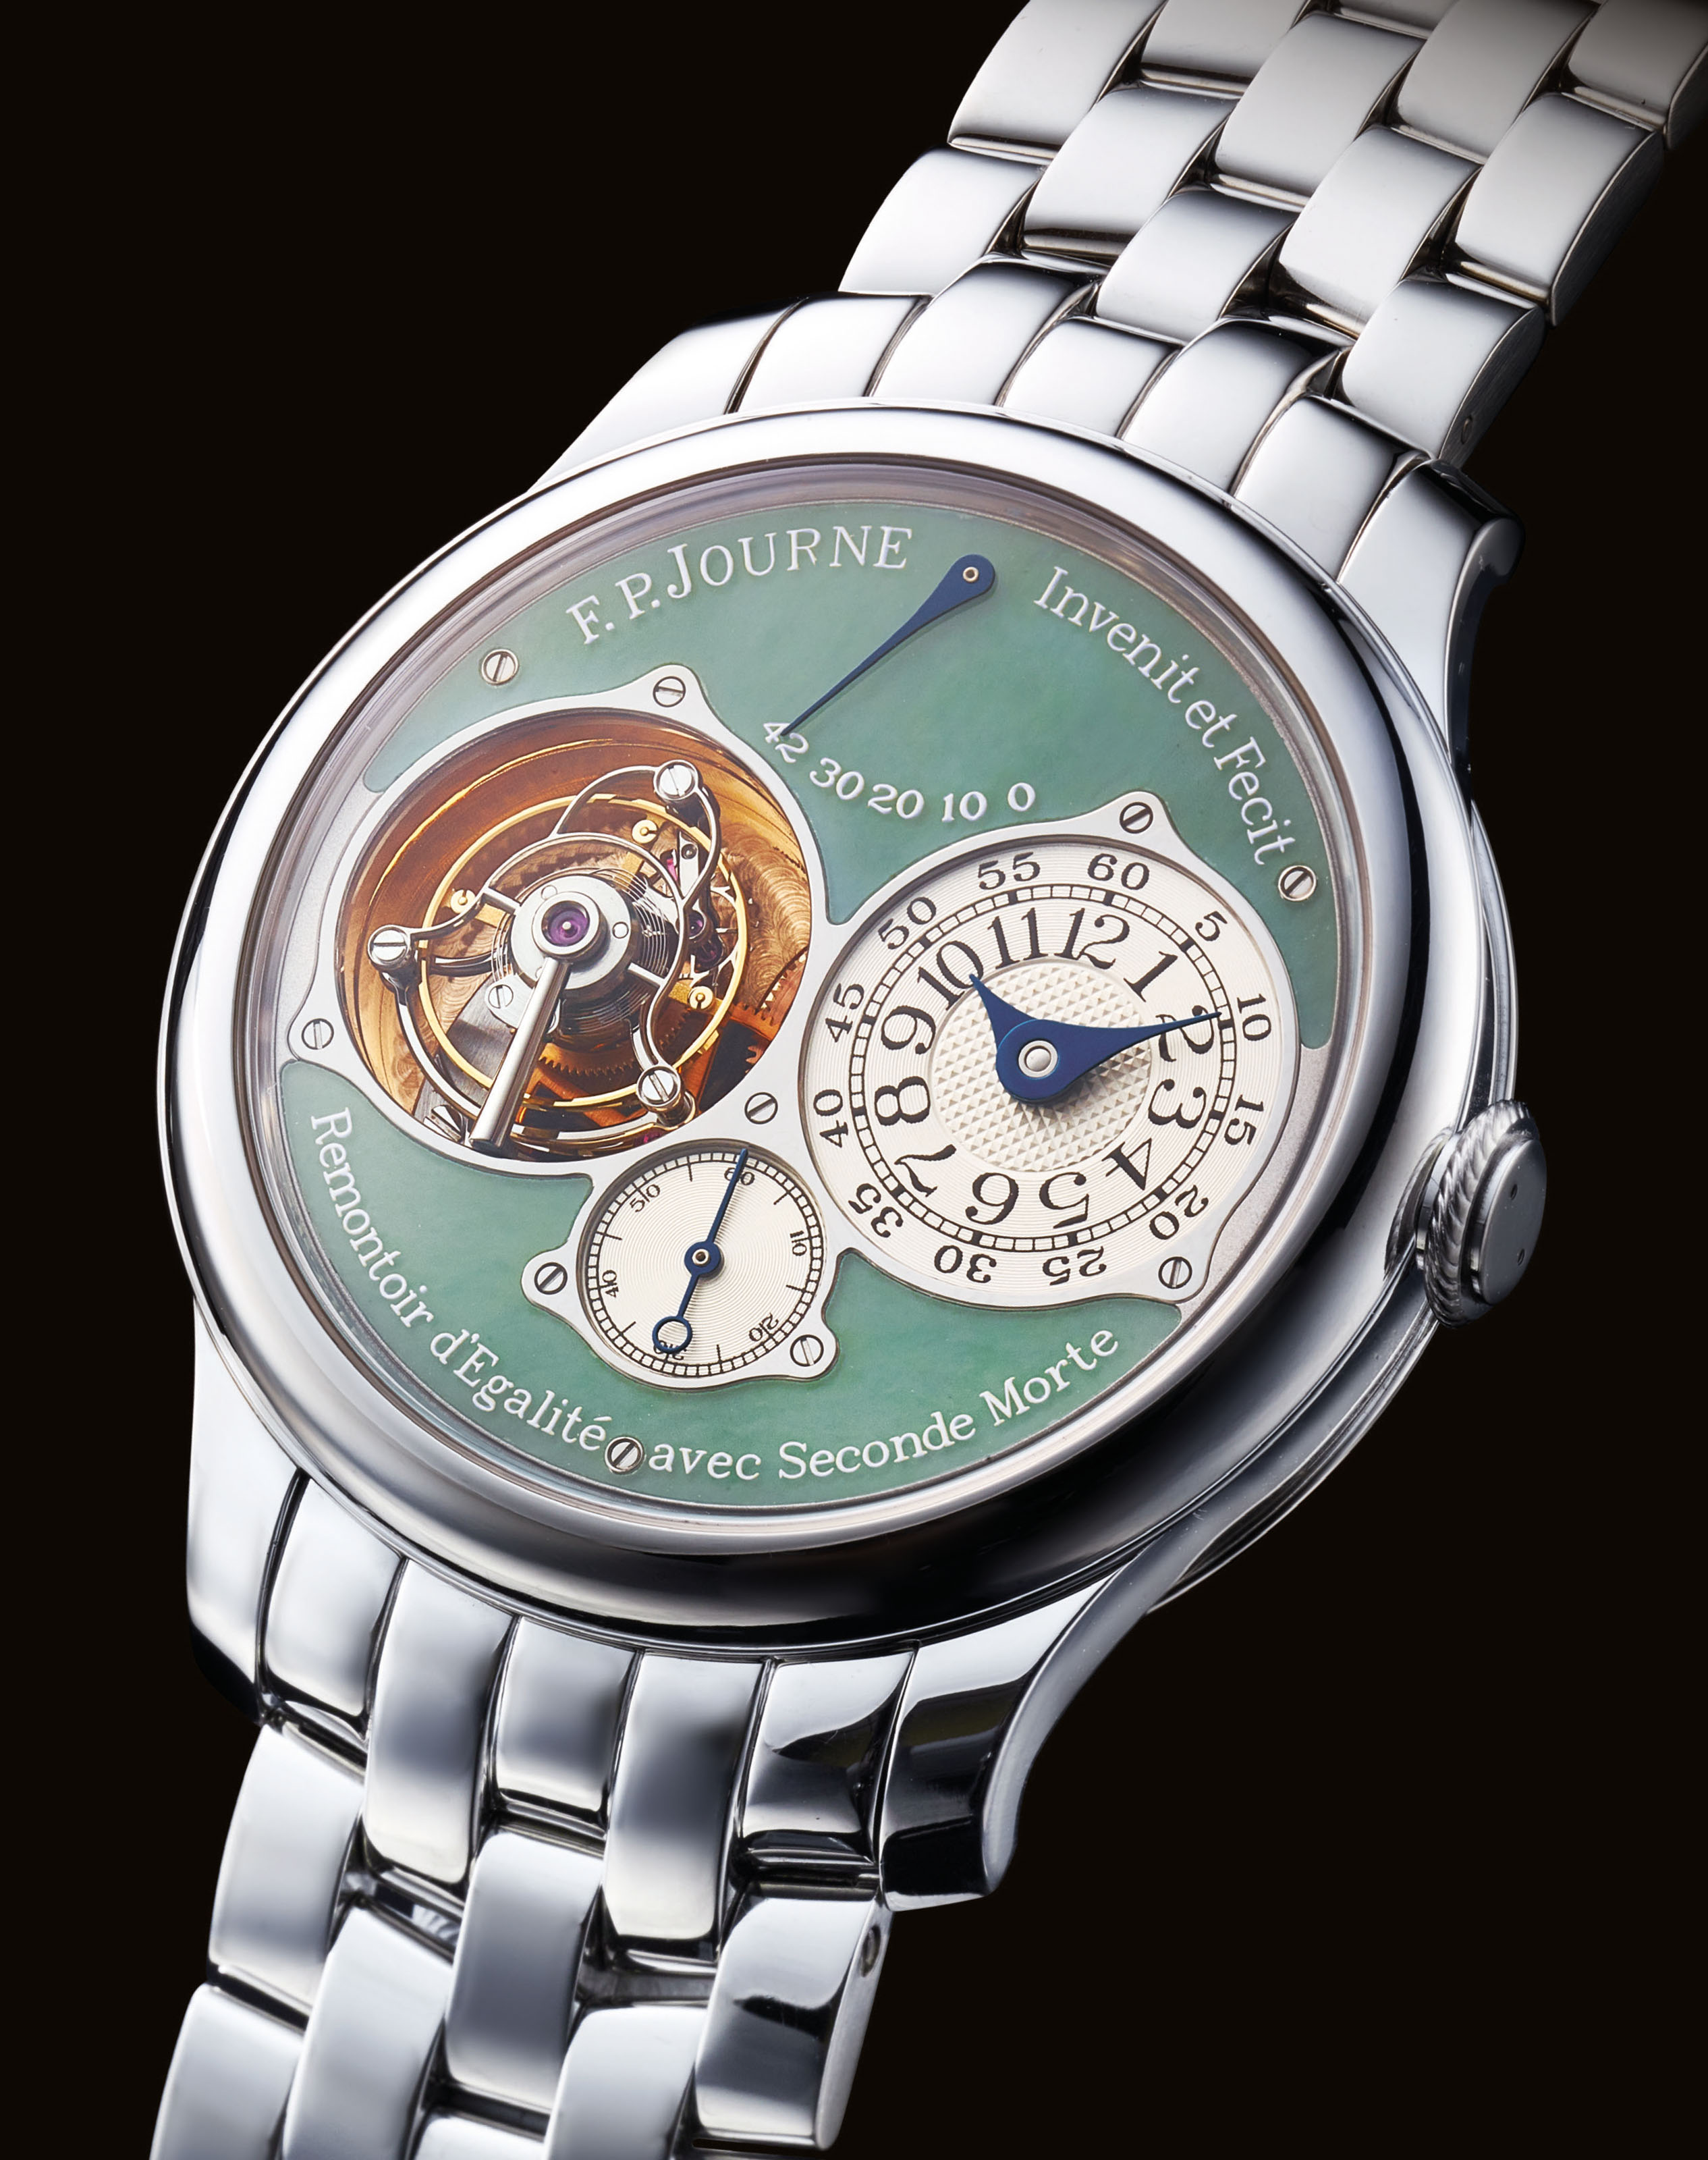 F.P. JOURNE. AN IMPRESSIVE AND VERY RARE PLATINUM TOURBILLON WRISTWATCH WITH CONSTANT FORCE WINDING, POWER RESERVE, DEAD BEAT SECONDS, BRACELET AND JADE DIAL